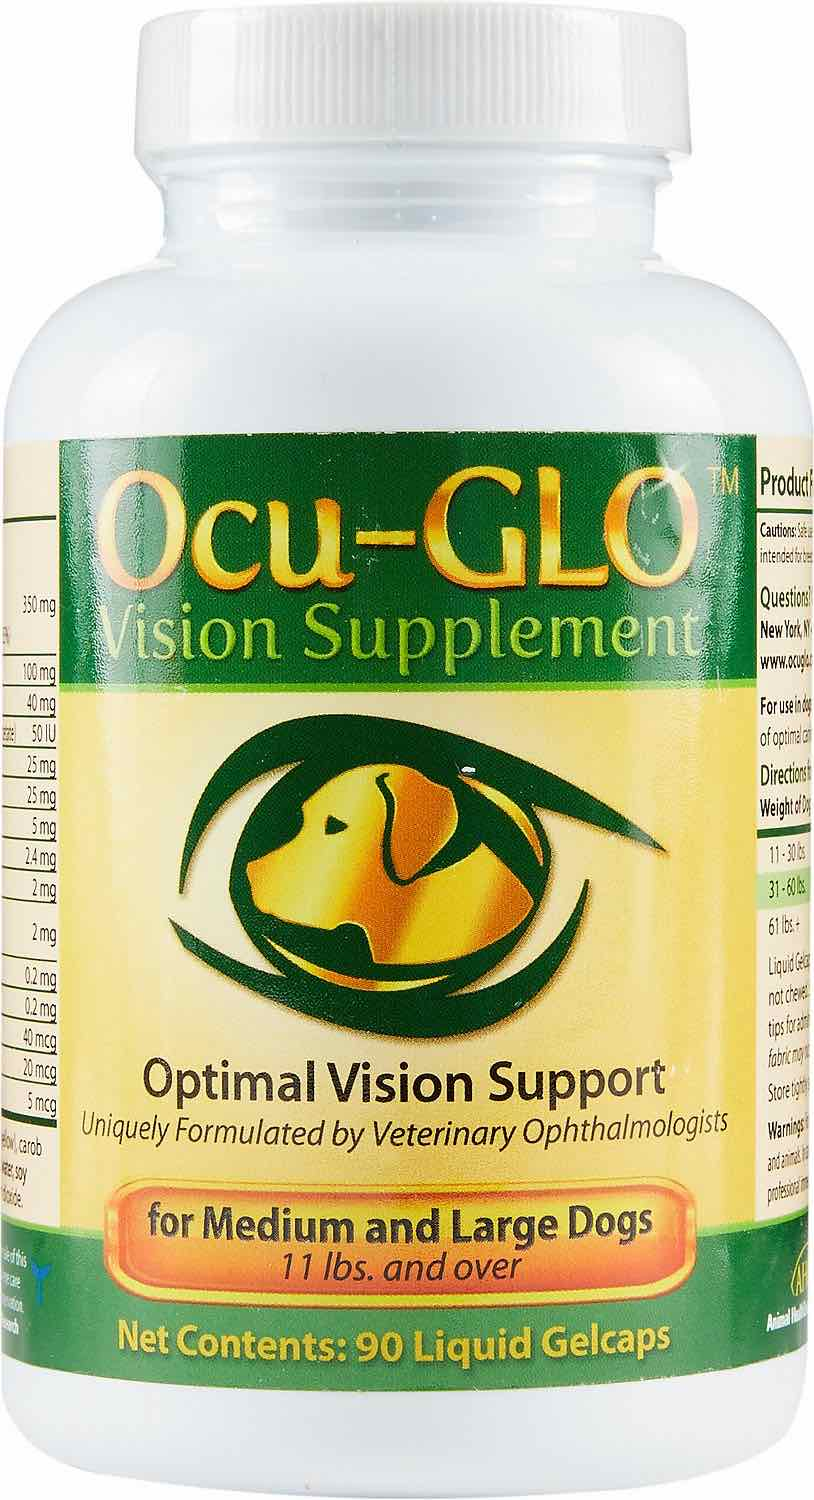 Ocu-GLO Gelcaps 90 count for medium & large dogs 11 lbs and over 1